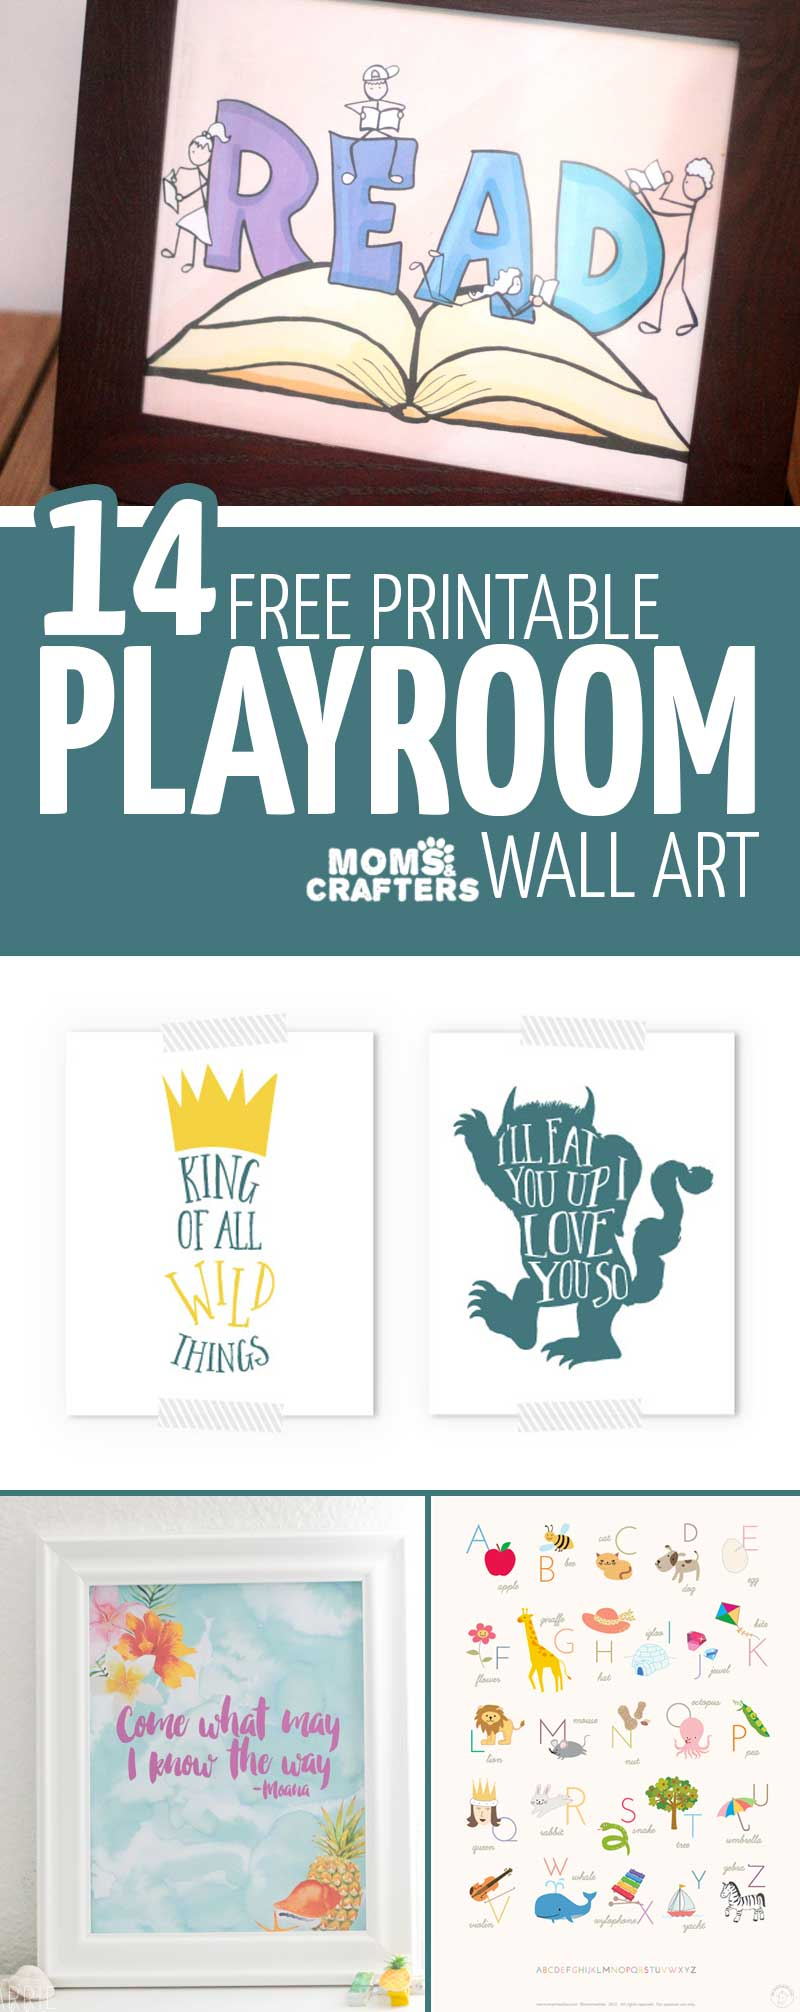 picture relating to Free Printable Nursery Art referred to as Totally free Playroom Printables - Nursery Wall Artwork * Mothers and Crafters